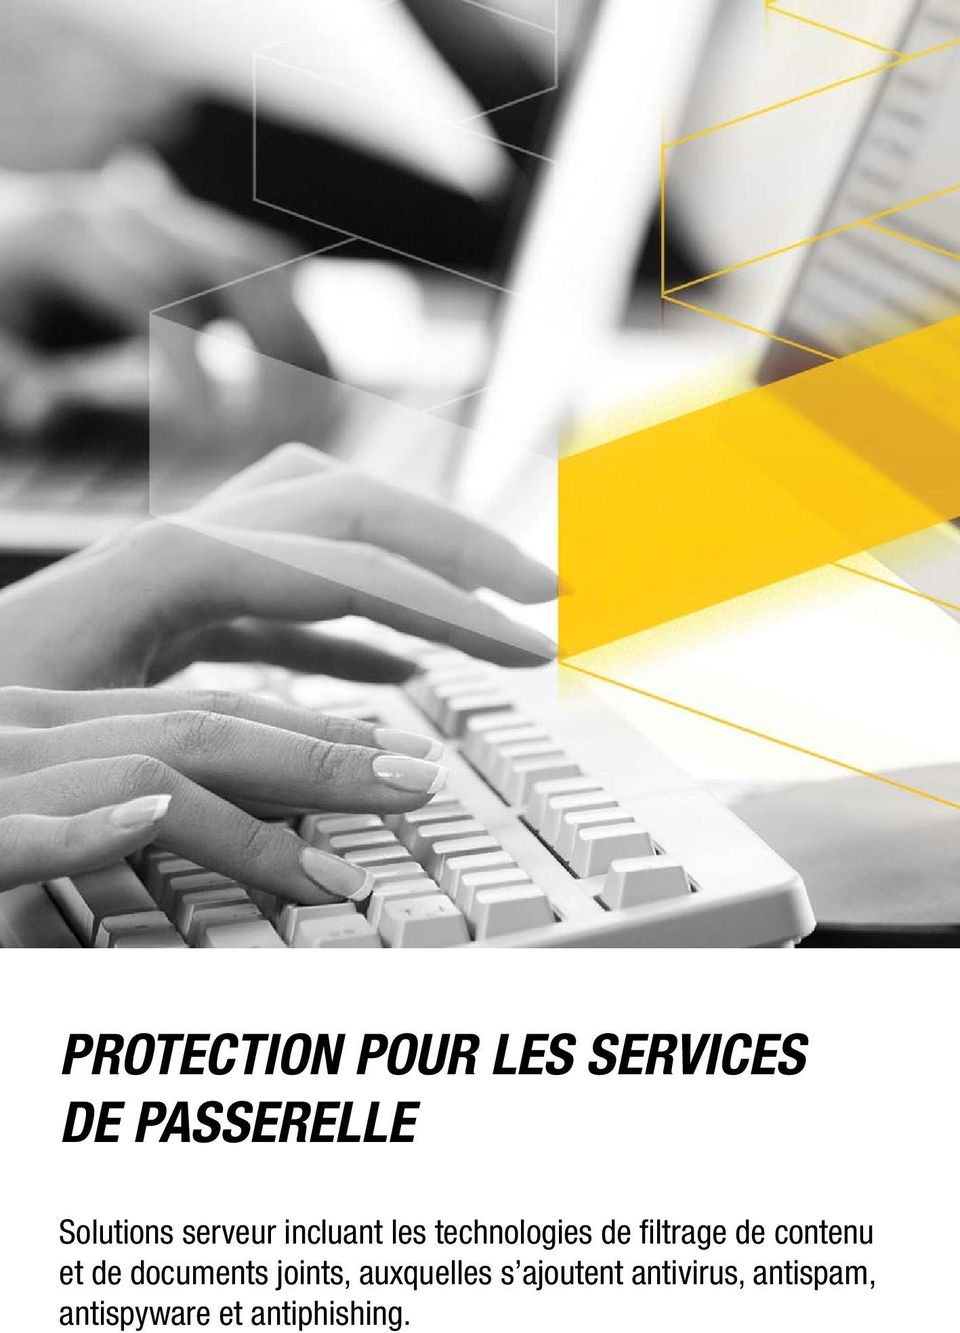 ltrage de contenu et de documents joints,